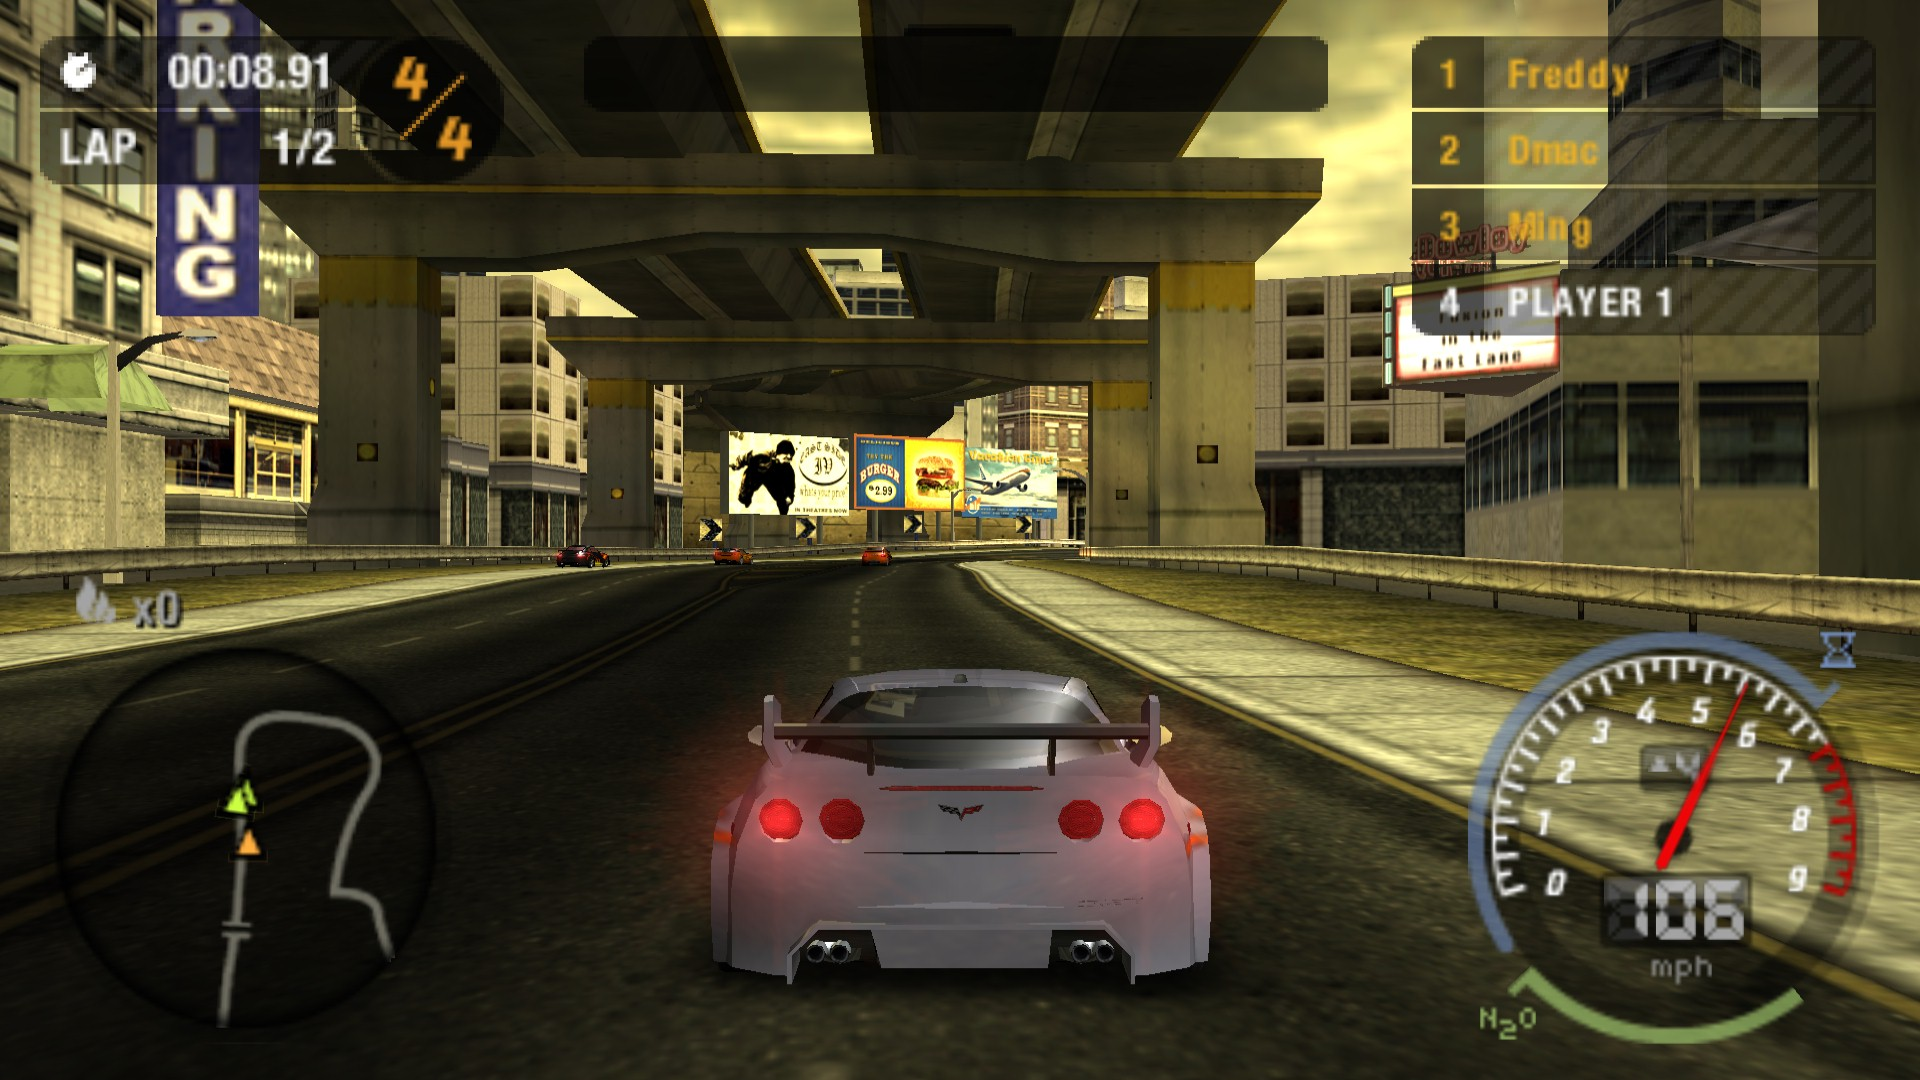 Need for speed most wanted for pc (windows 7/8/8. 1/xp) apps for pc.